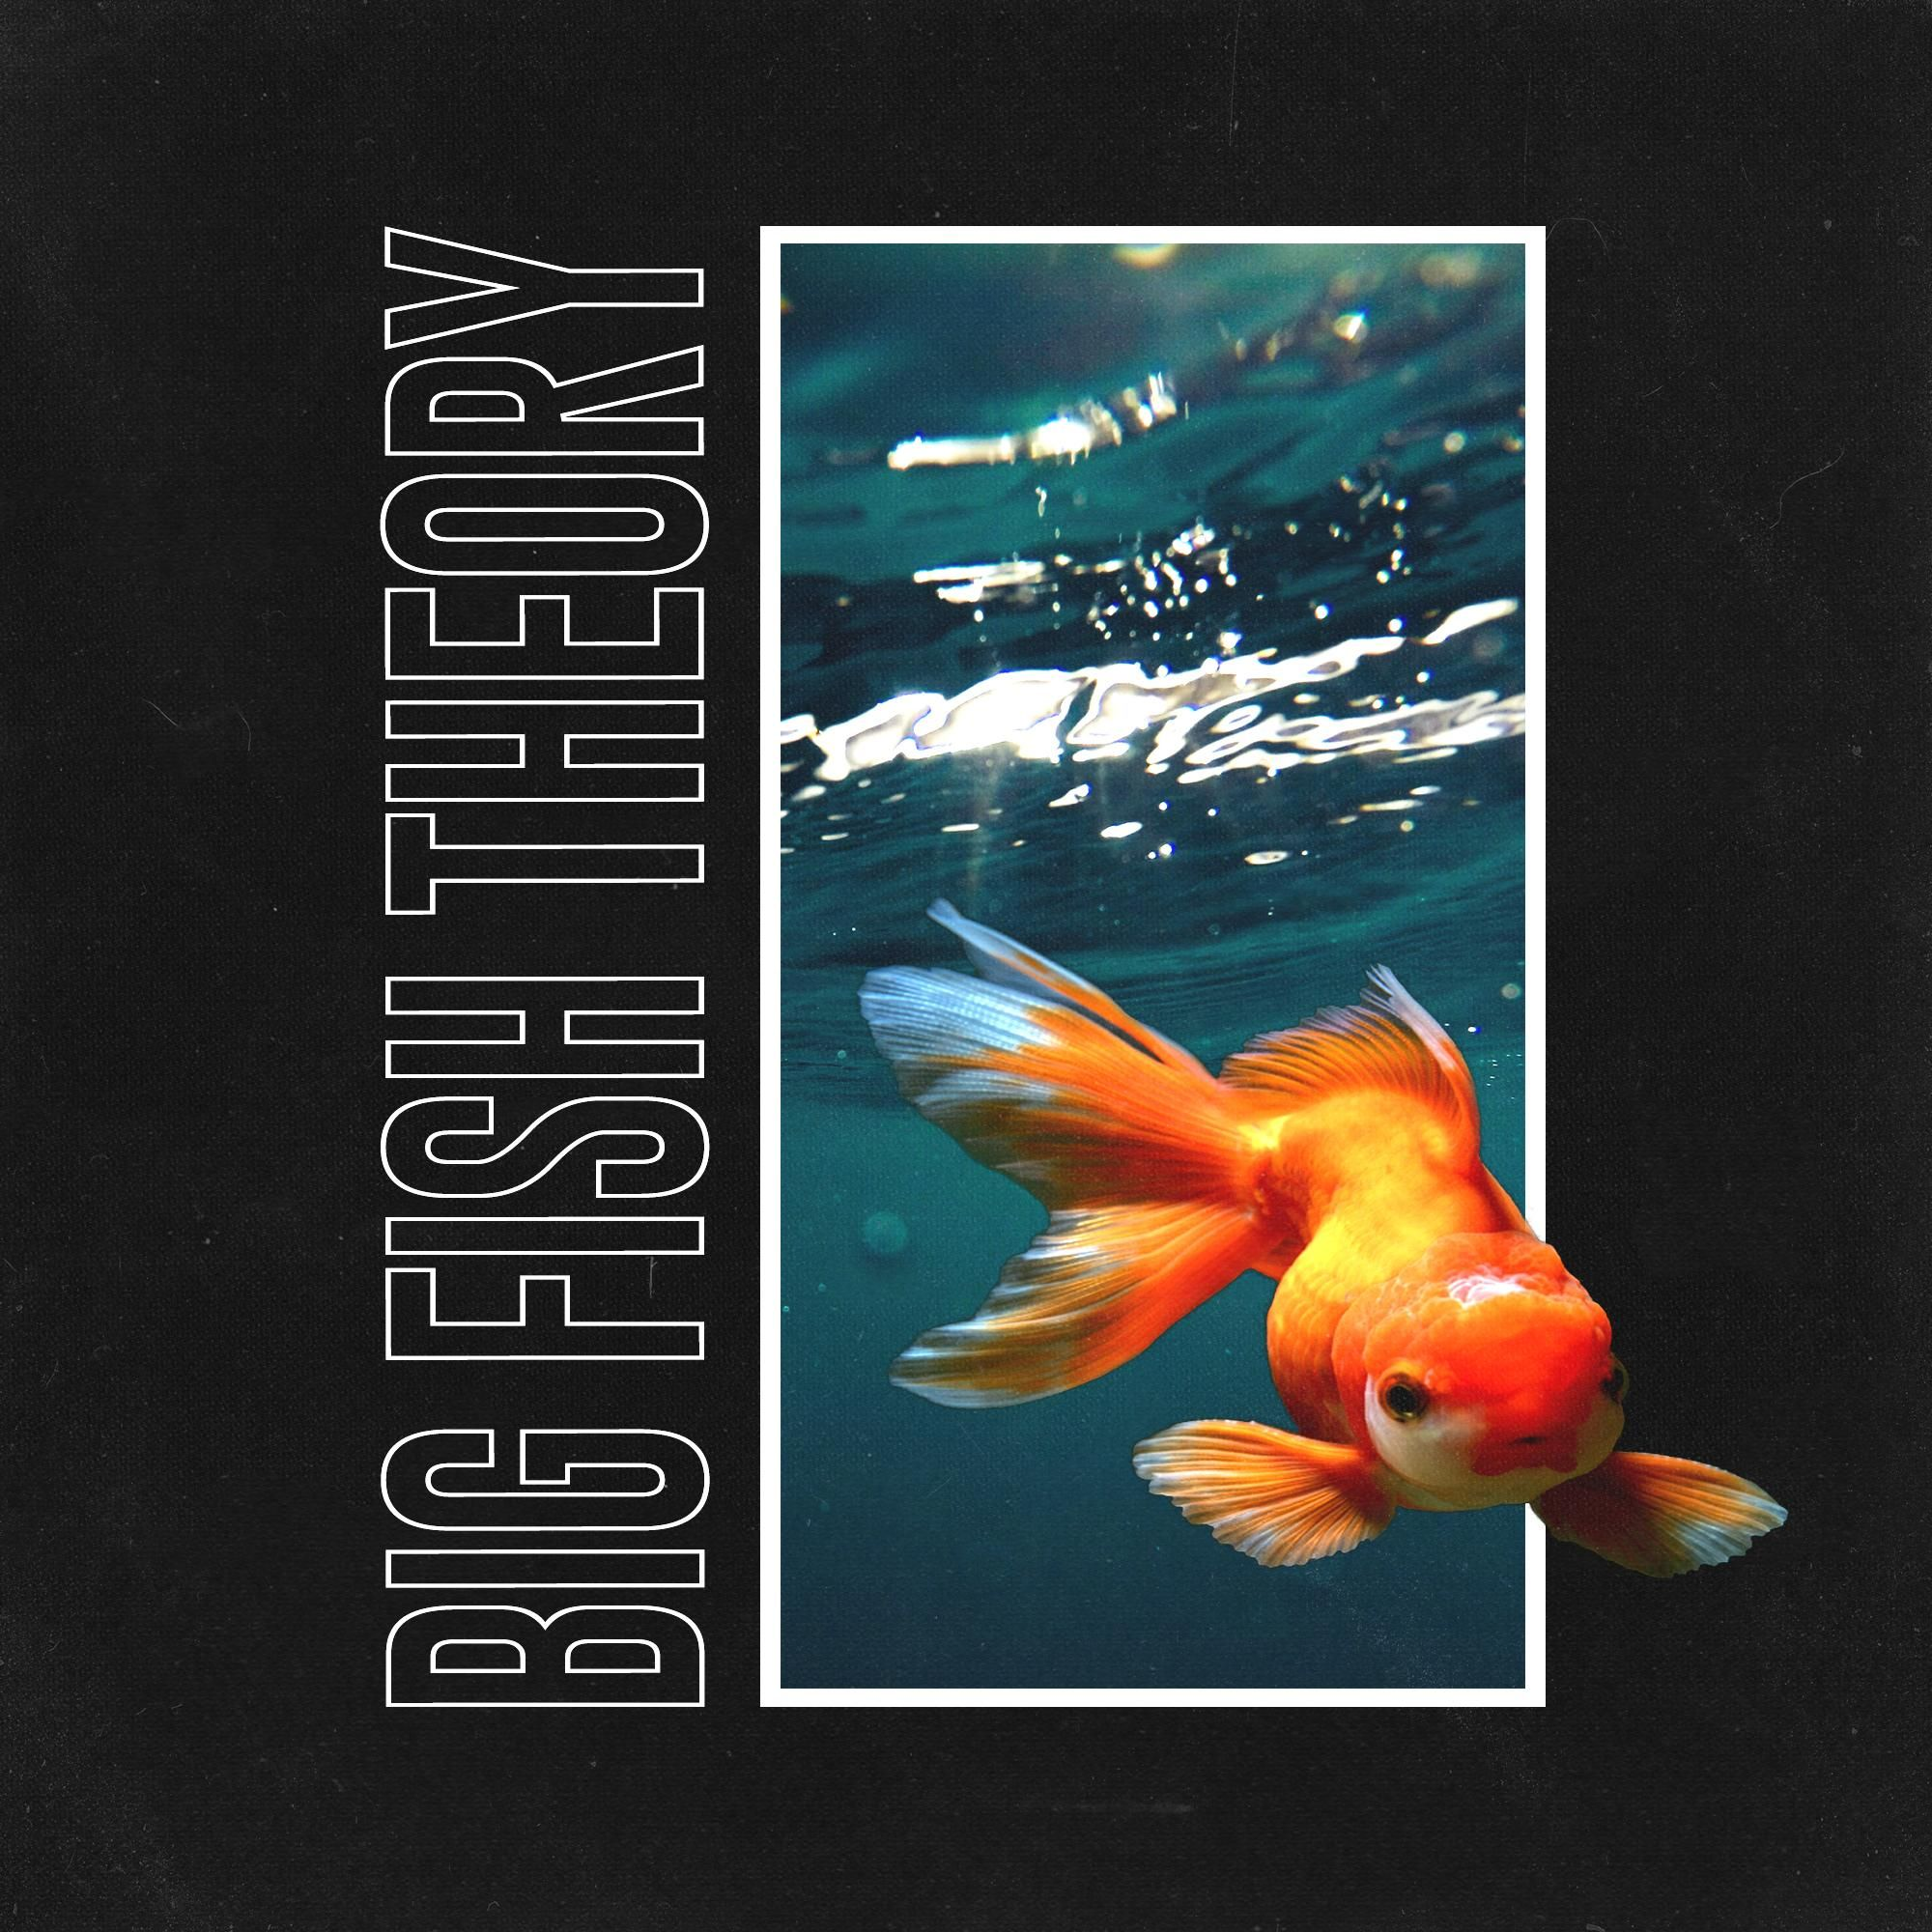 Vince Staples Big Fish Theory Album Cover Design Vince Staples Cover Art Design